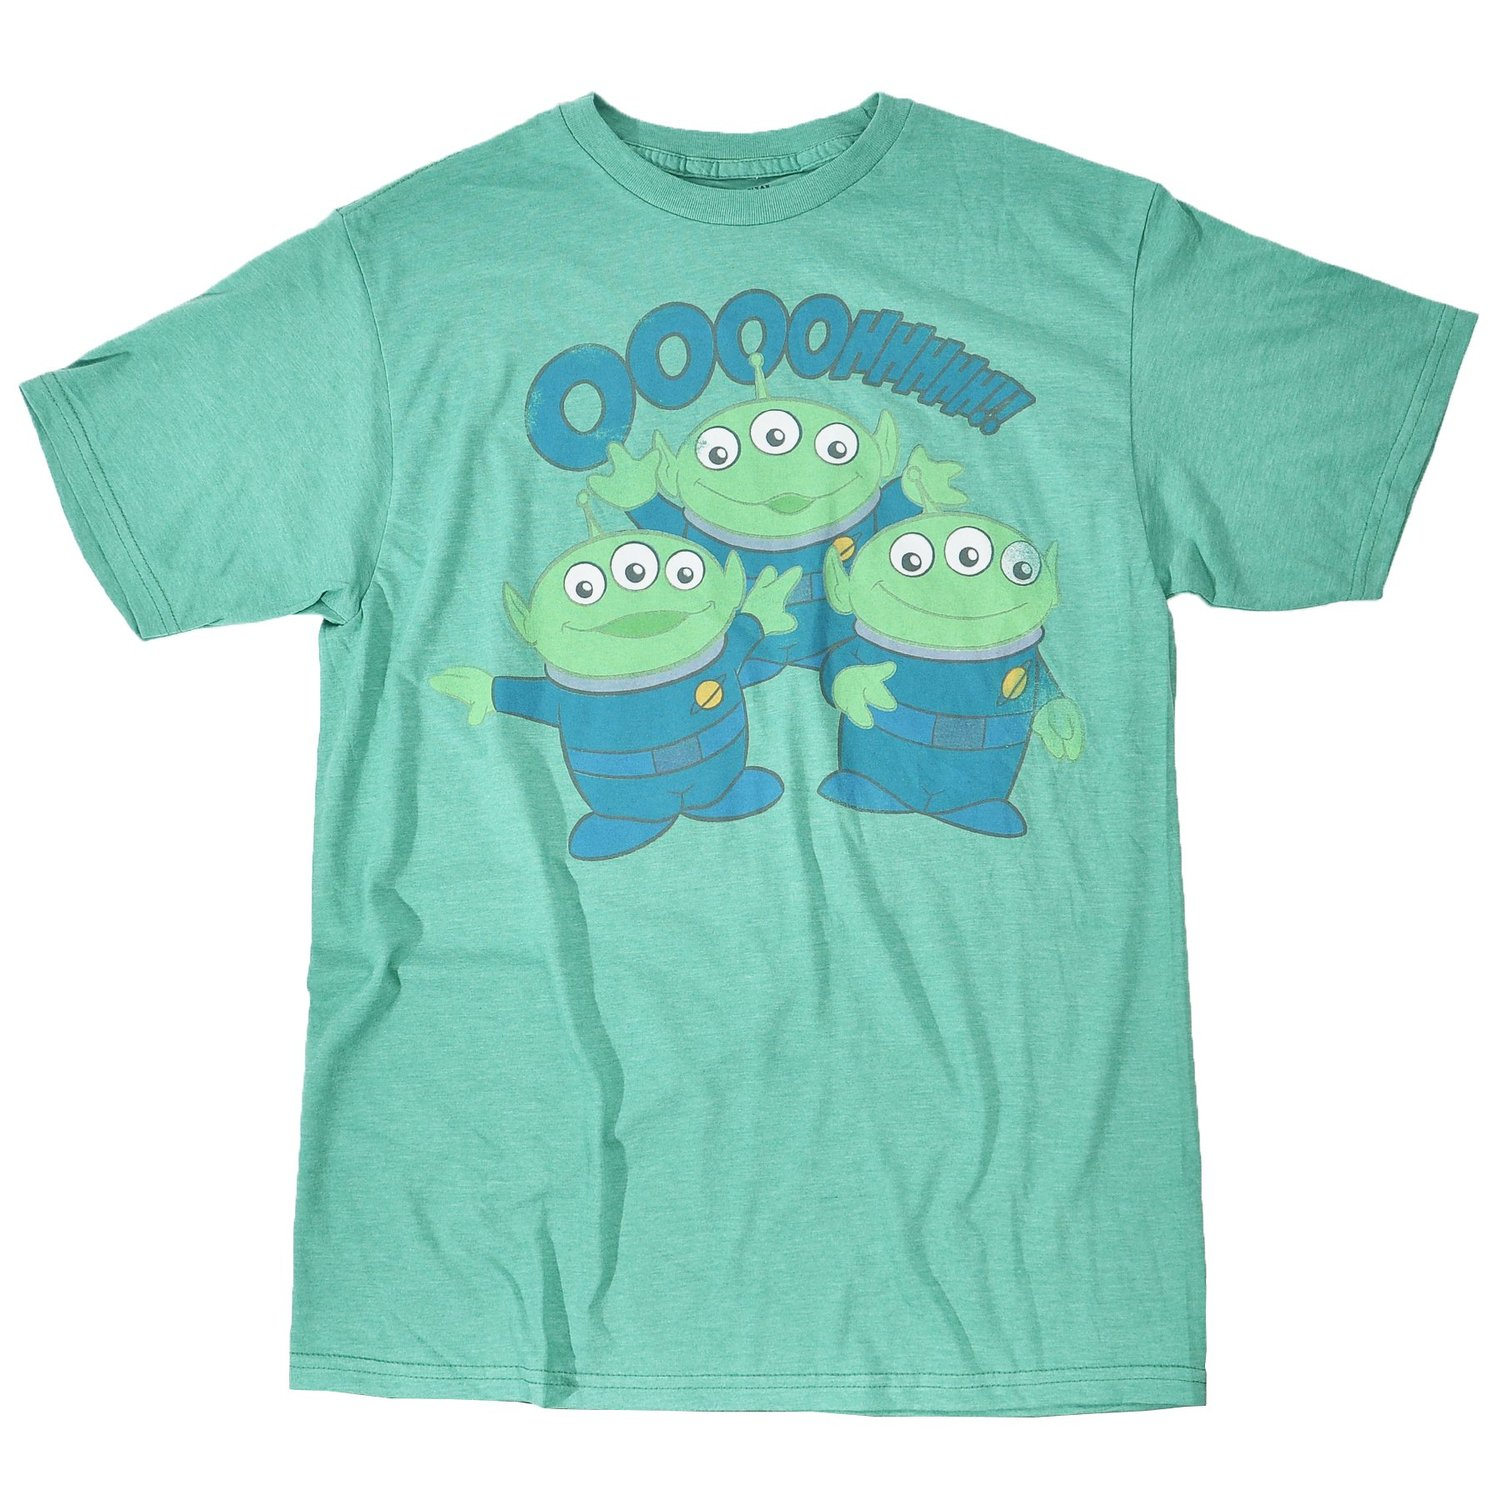 Peanuts Toy Story Mens Pizza Planet Aliens T Shirt 2xl Heather